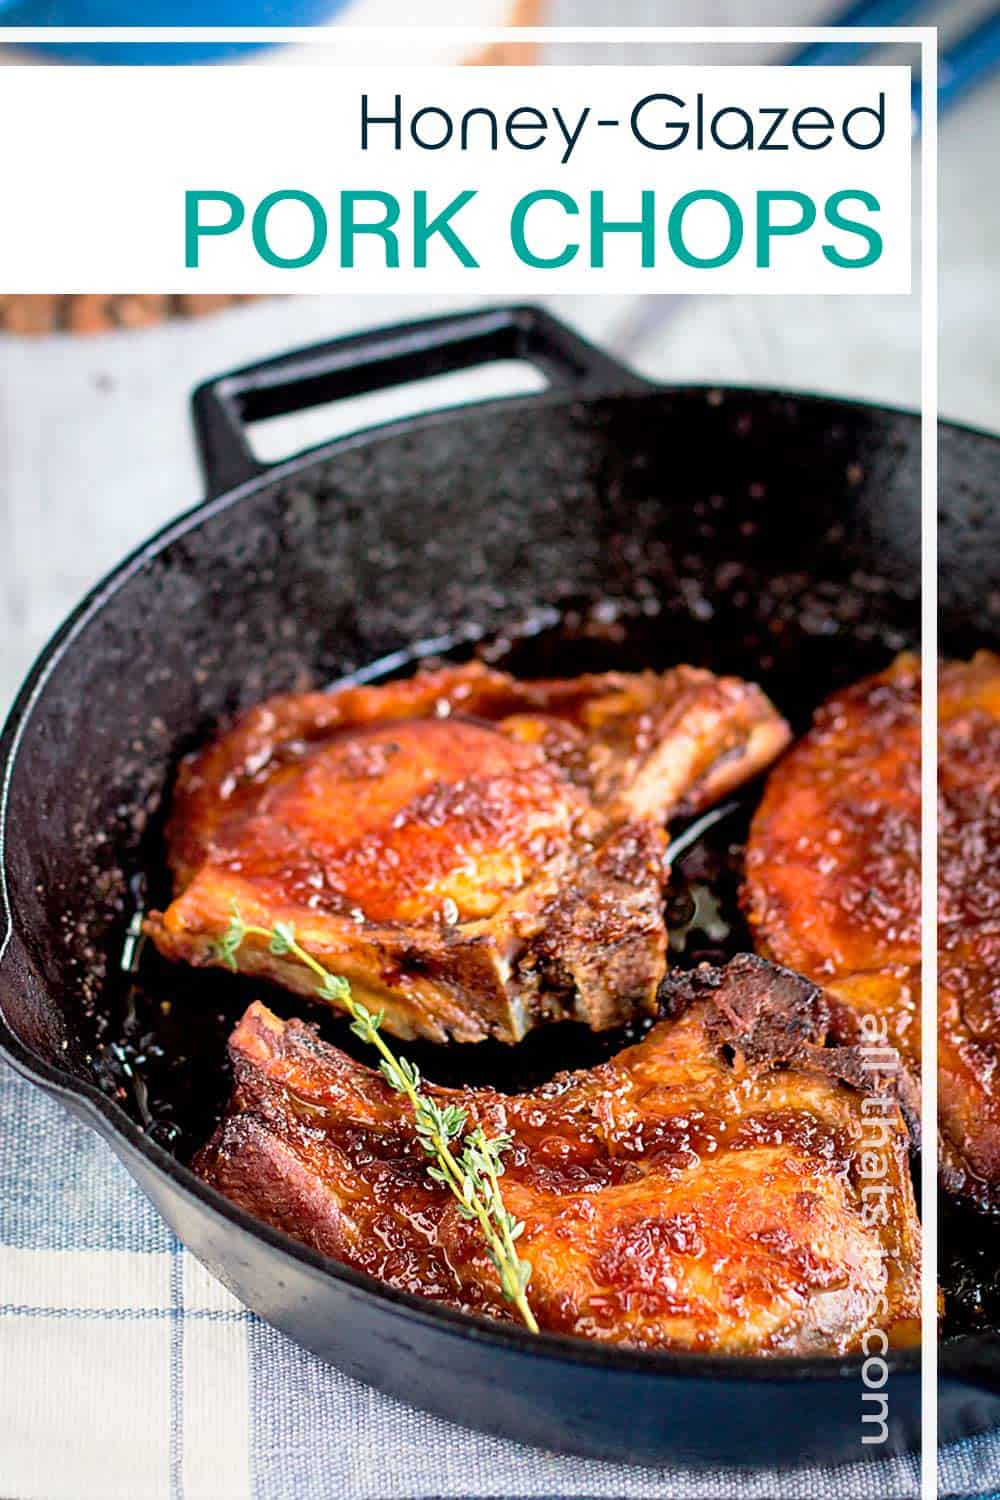 Chops in a iron skillet with text overlay.